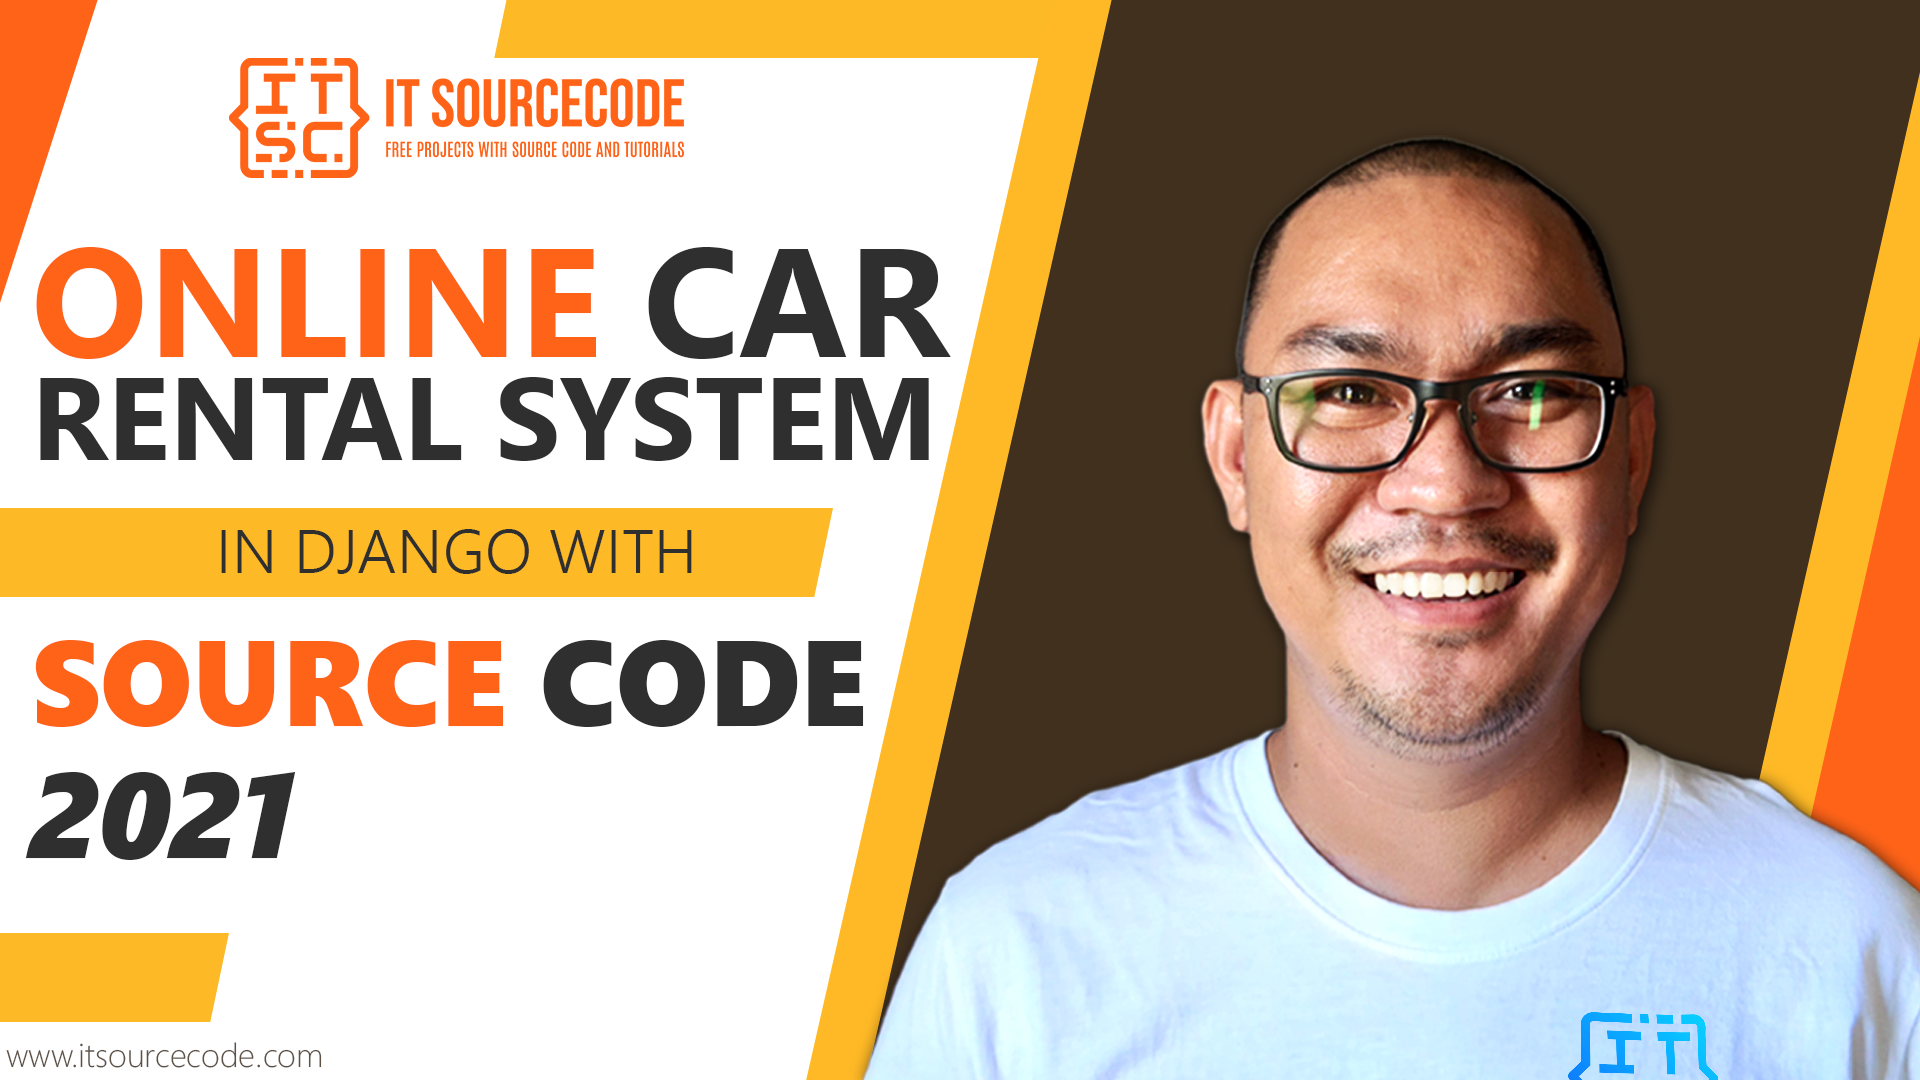 Online Car Rental System in Django with Source Code 2021